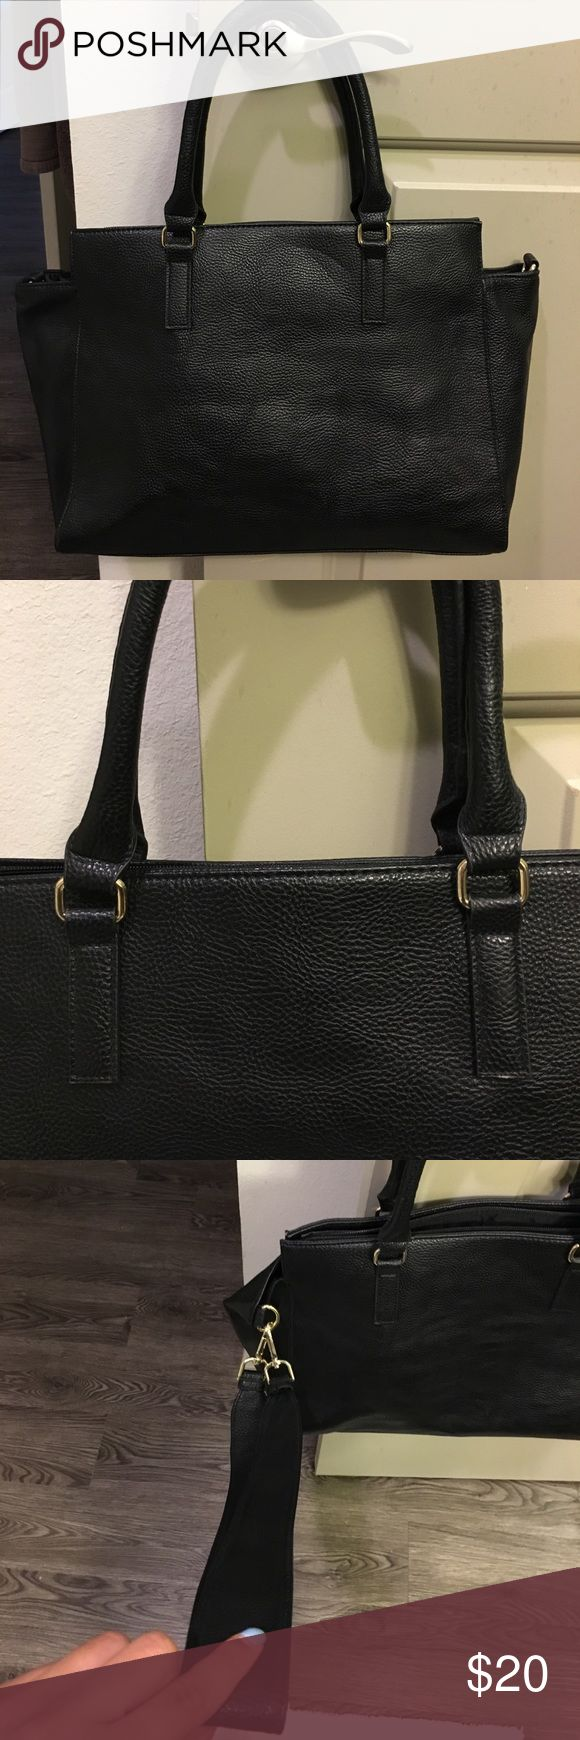 H&M | Black tote bag (with strap) H&M black tote bag that includes a strap to wear as a cross body, I would consider this bag size a medium, more of a travel bag as well yet also dressy. Only has been used once, in perfection condition as well H&M Bags Totes